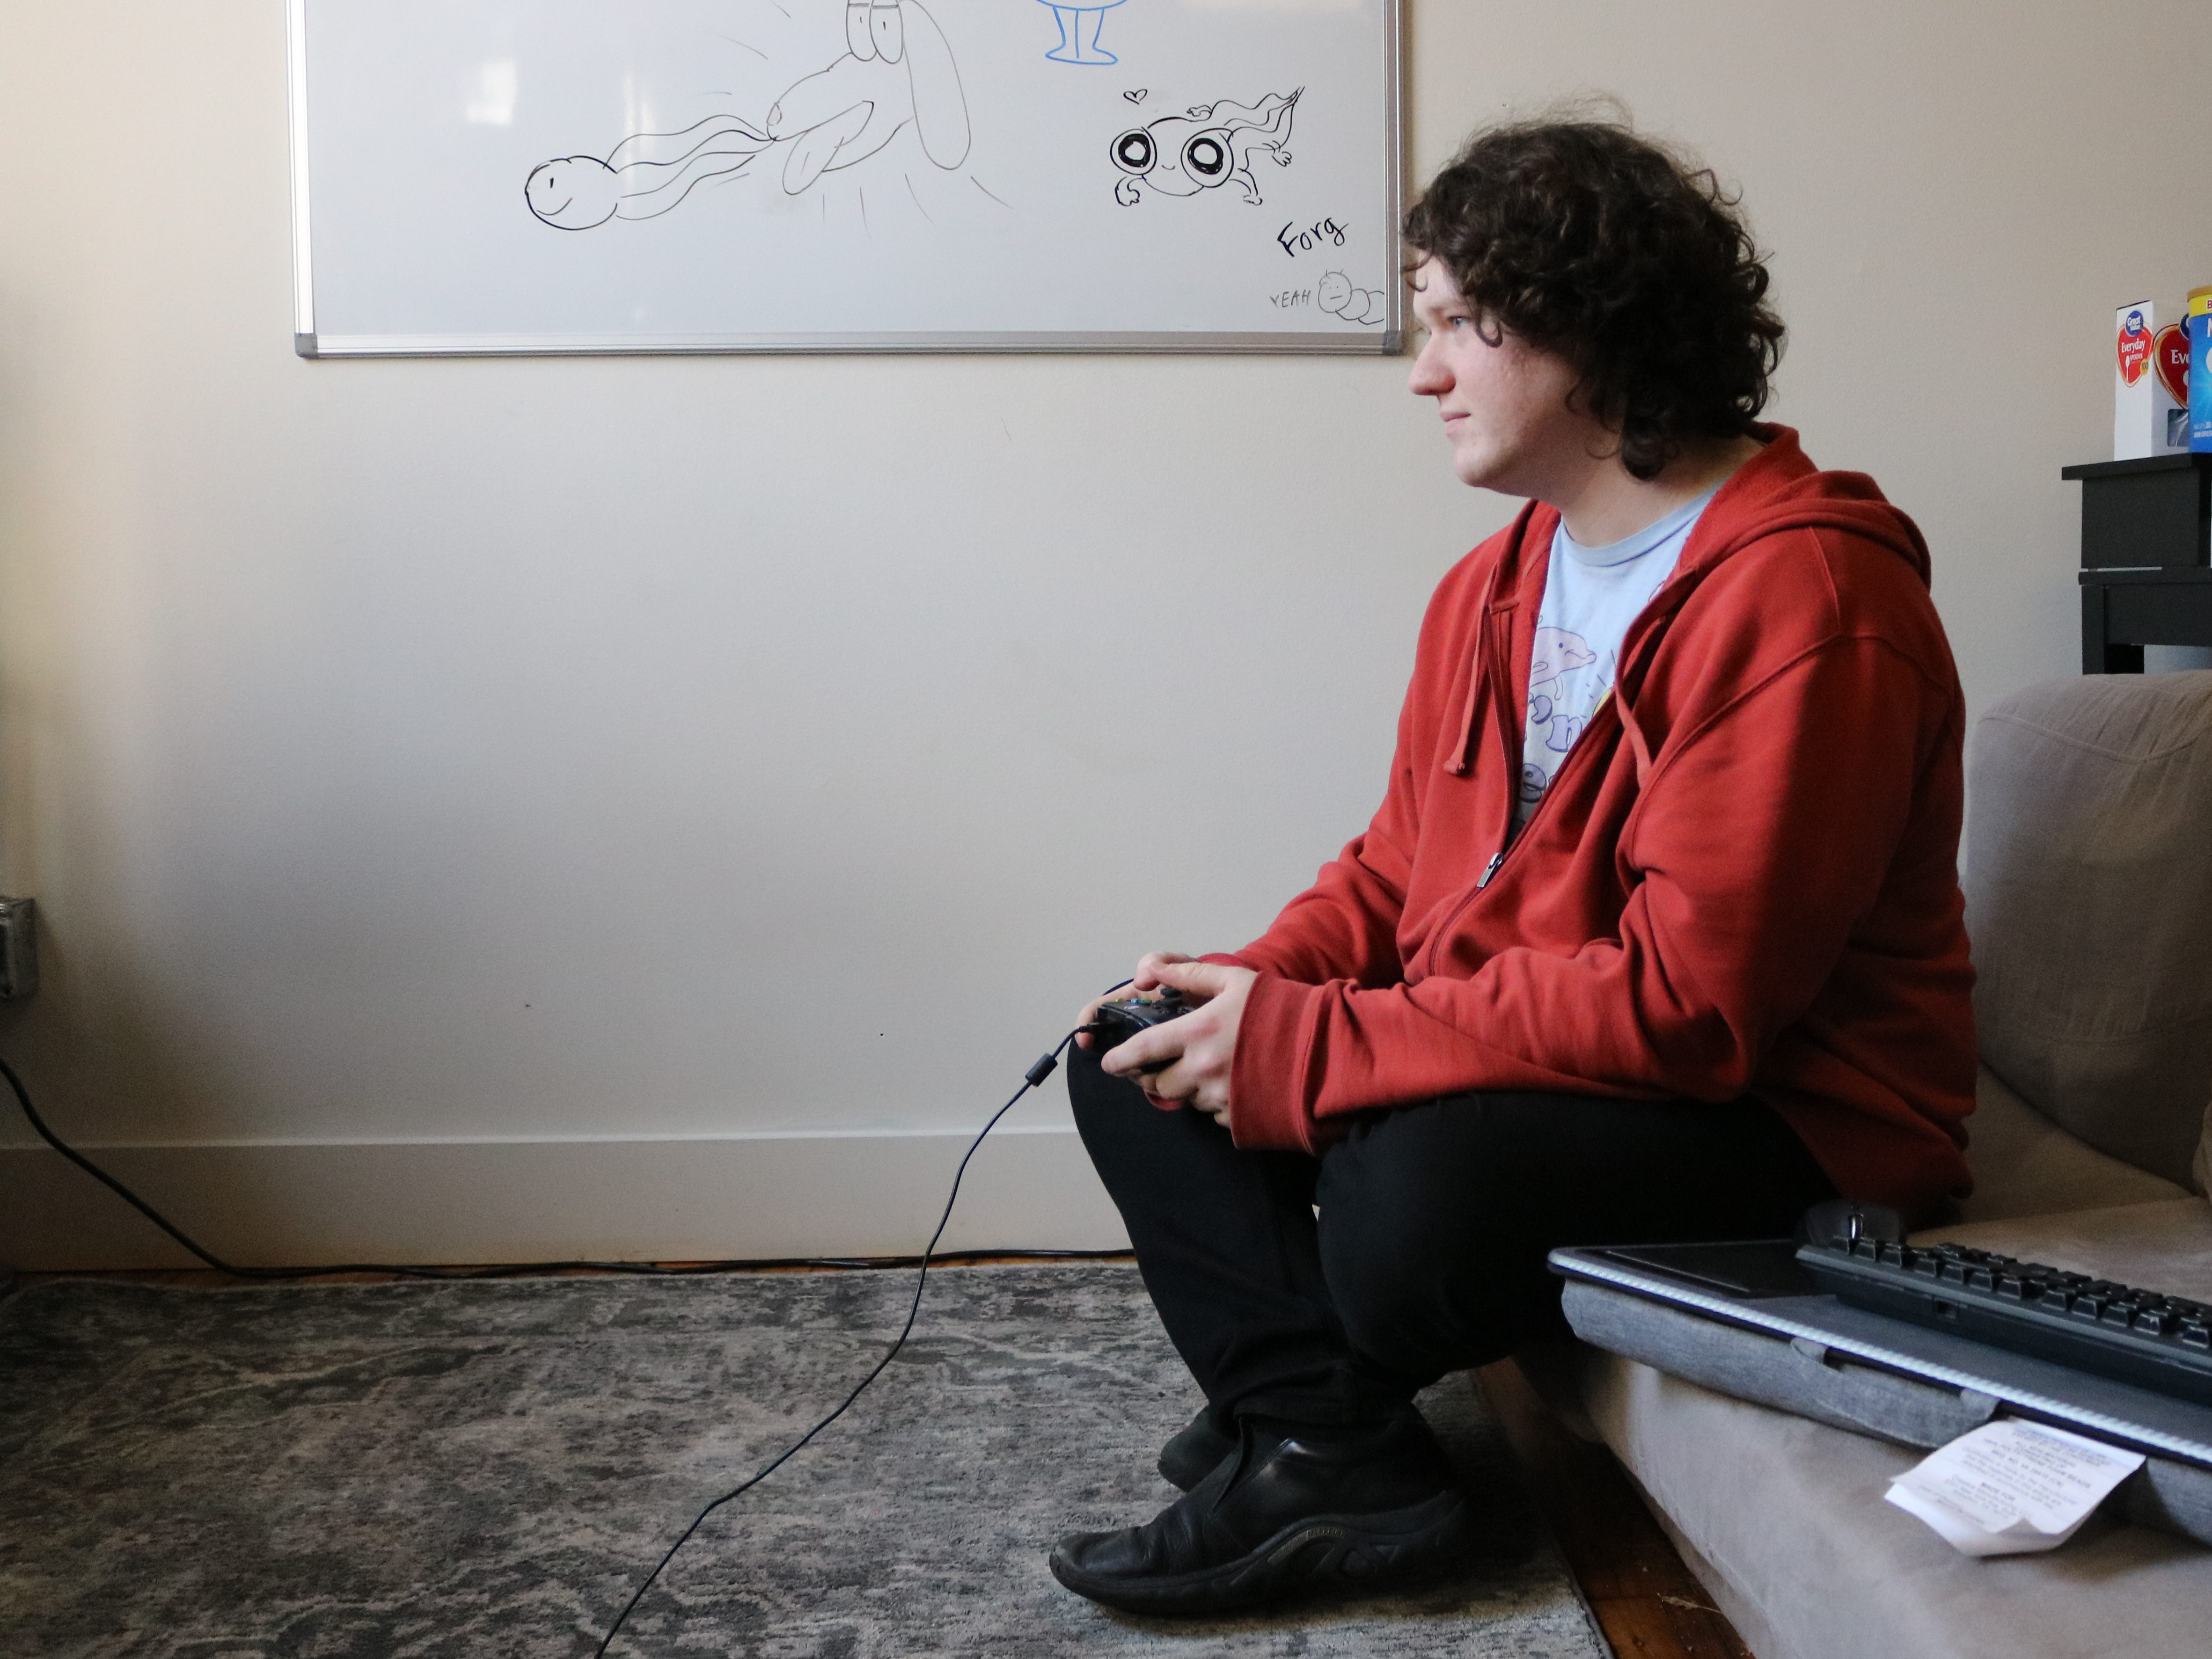 Fisher Wagg, 23, shows how Dad Quest, a game created by Sundae Month, is played. Wagg works for Sundae Month, but also has his own company, Feeler.Farm.